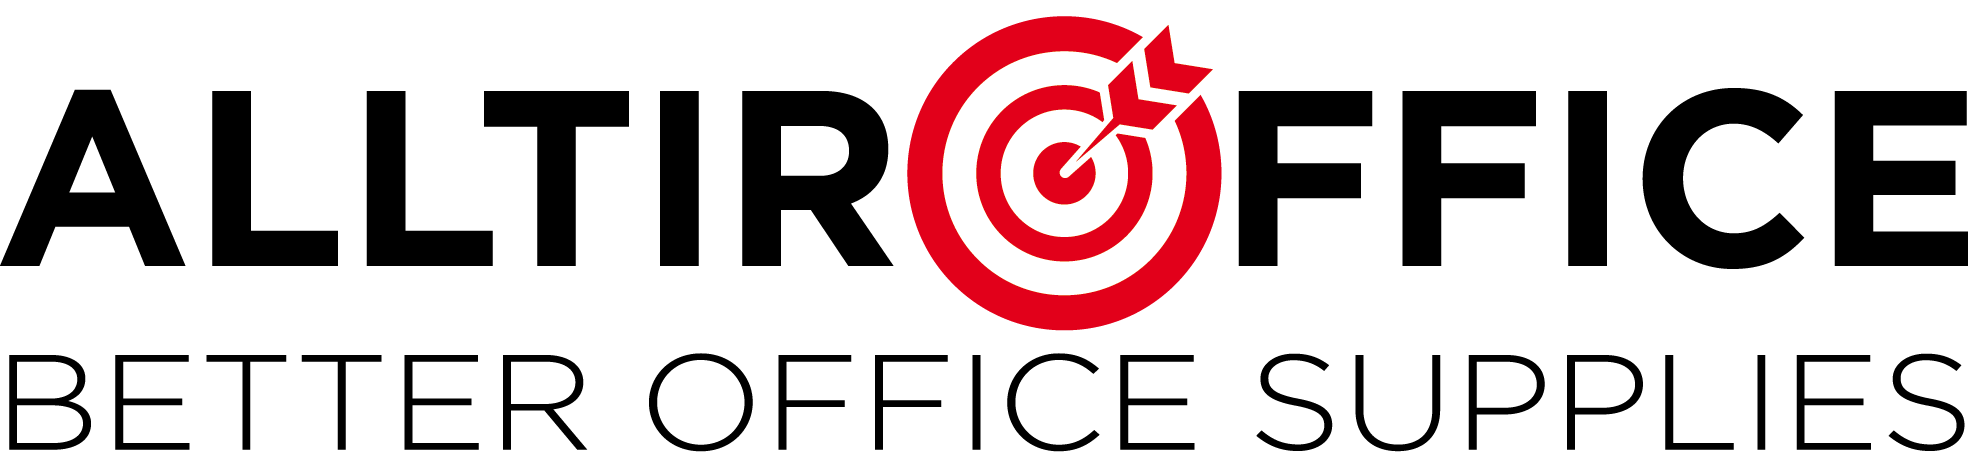 Logotipo ALLTIROFFICE | Better Office Supplies Productos de Oficinas